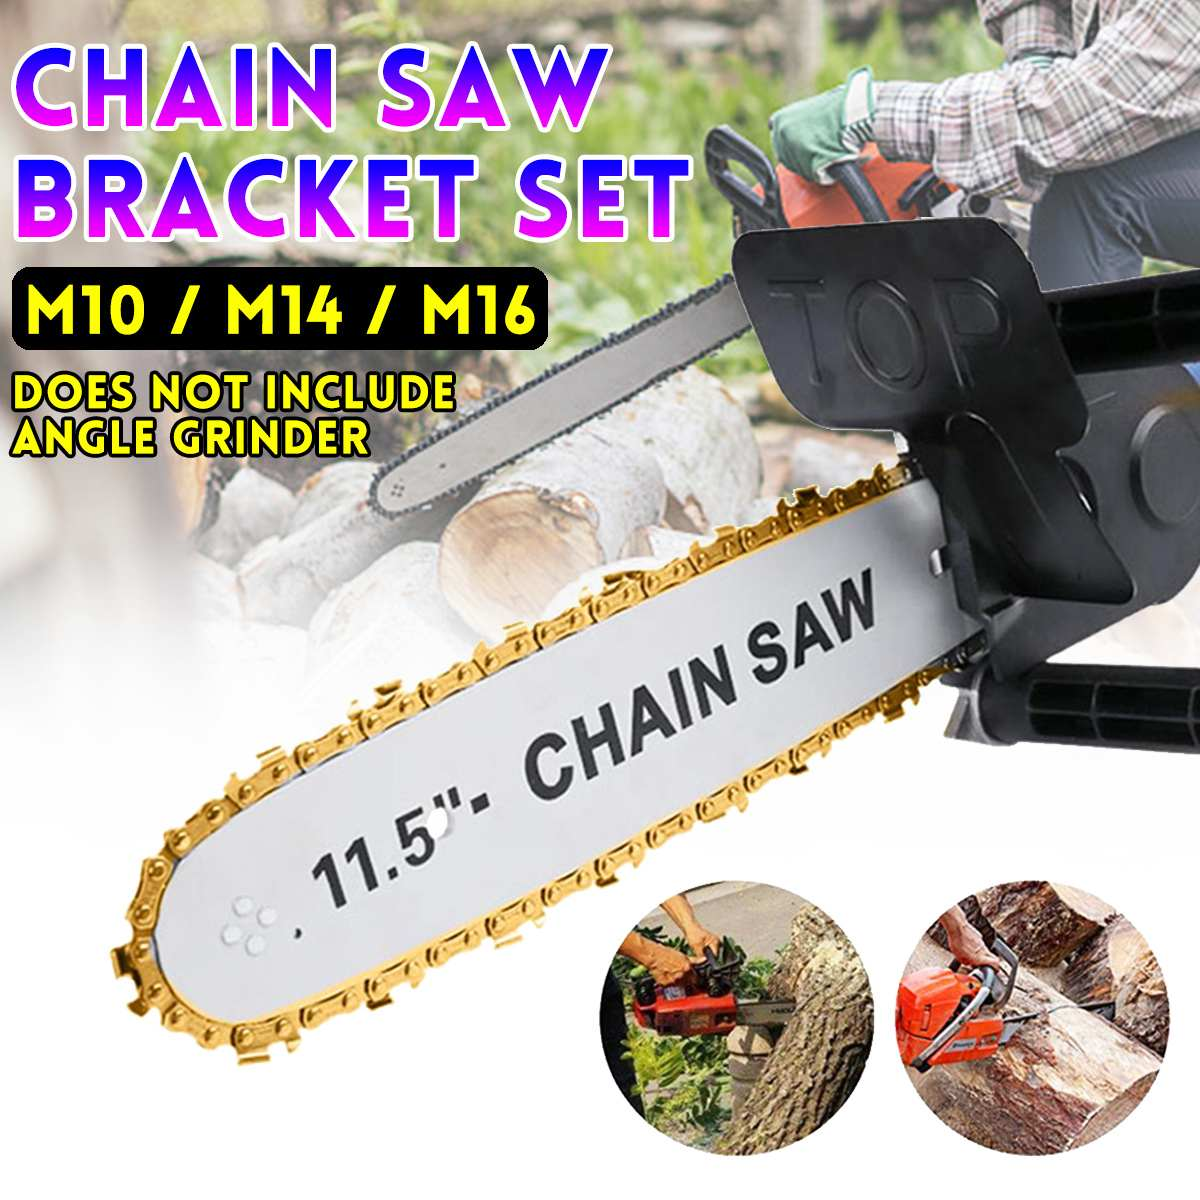 11.5 Inch Chainsaw Bracket Changed 100 125 150 Electric Angle Grinder M10/M14/M16 Into Chain Saw Woodworking Power Tool Set